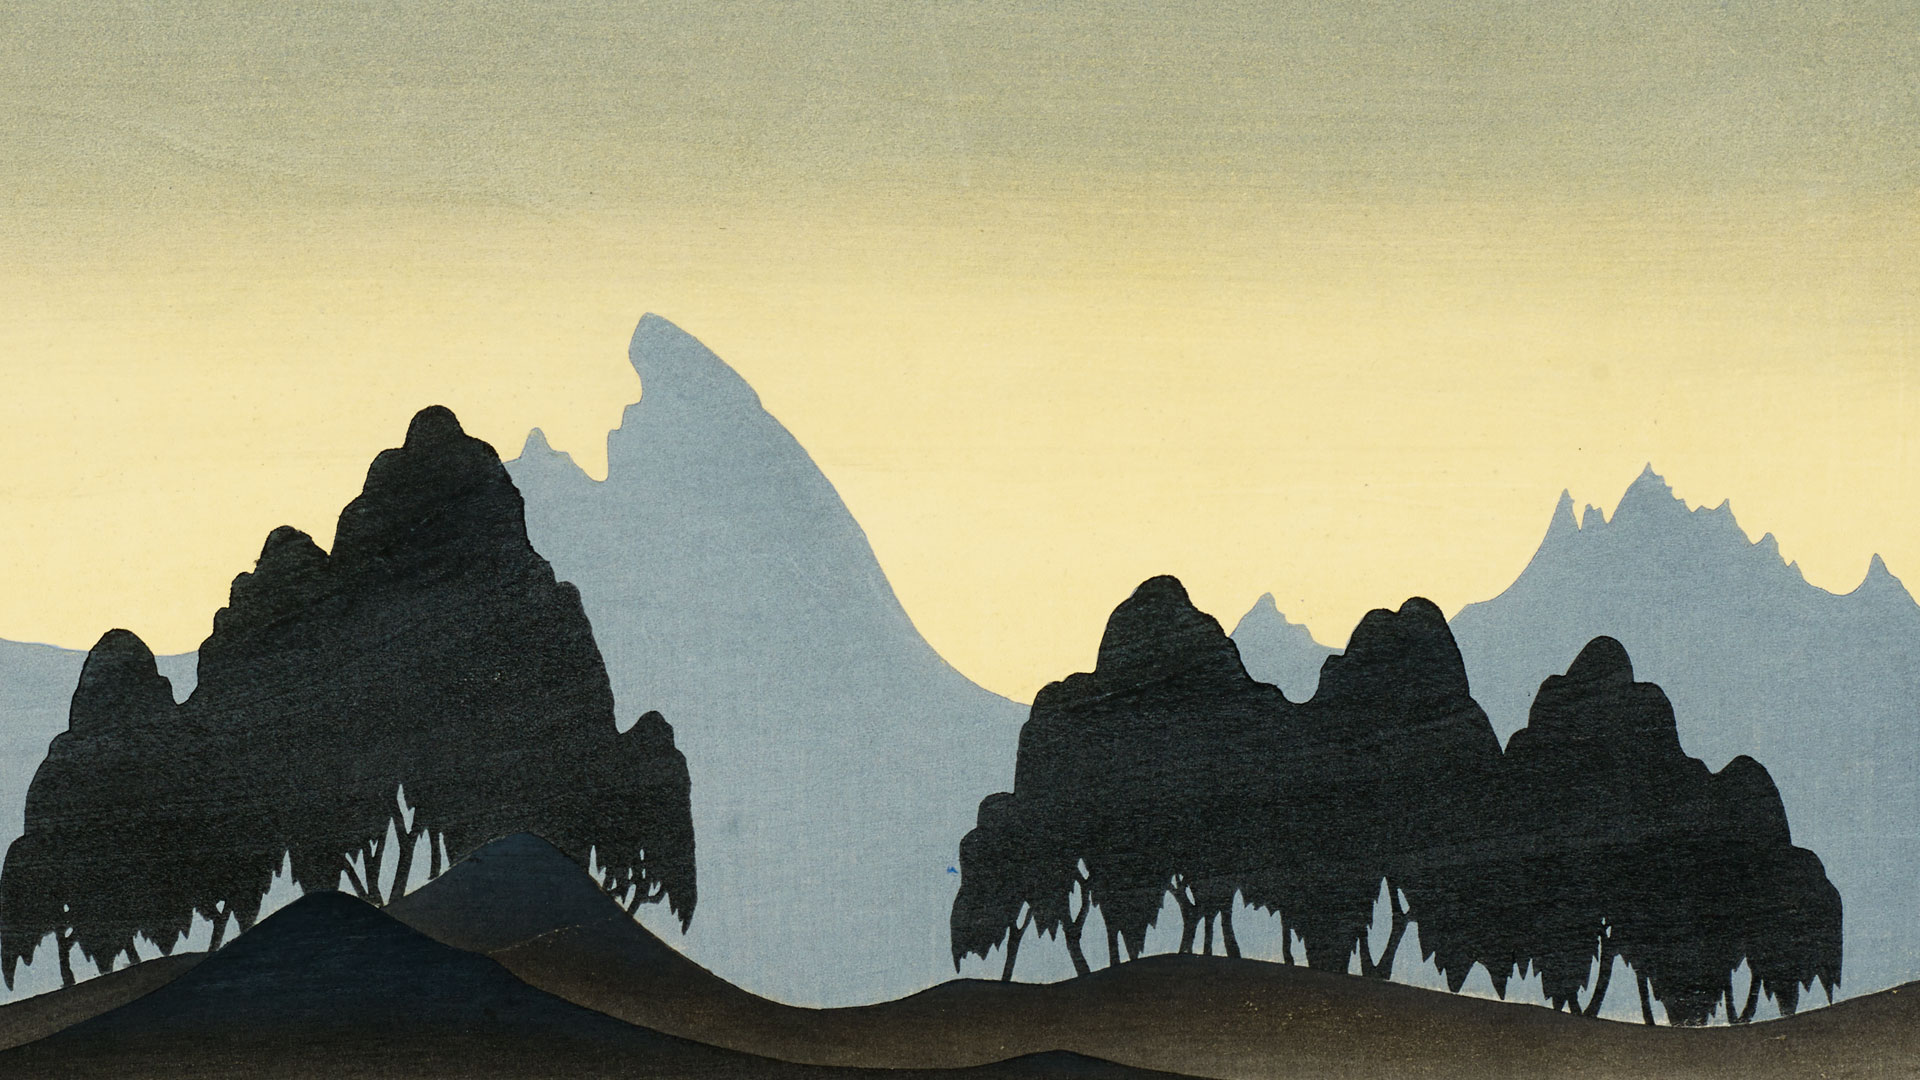 Woodcut print of a scenic landscape in Korea